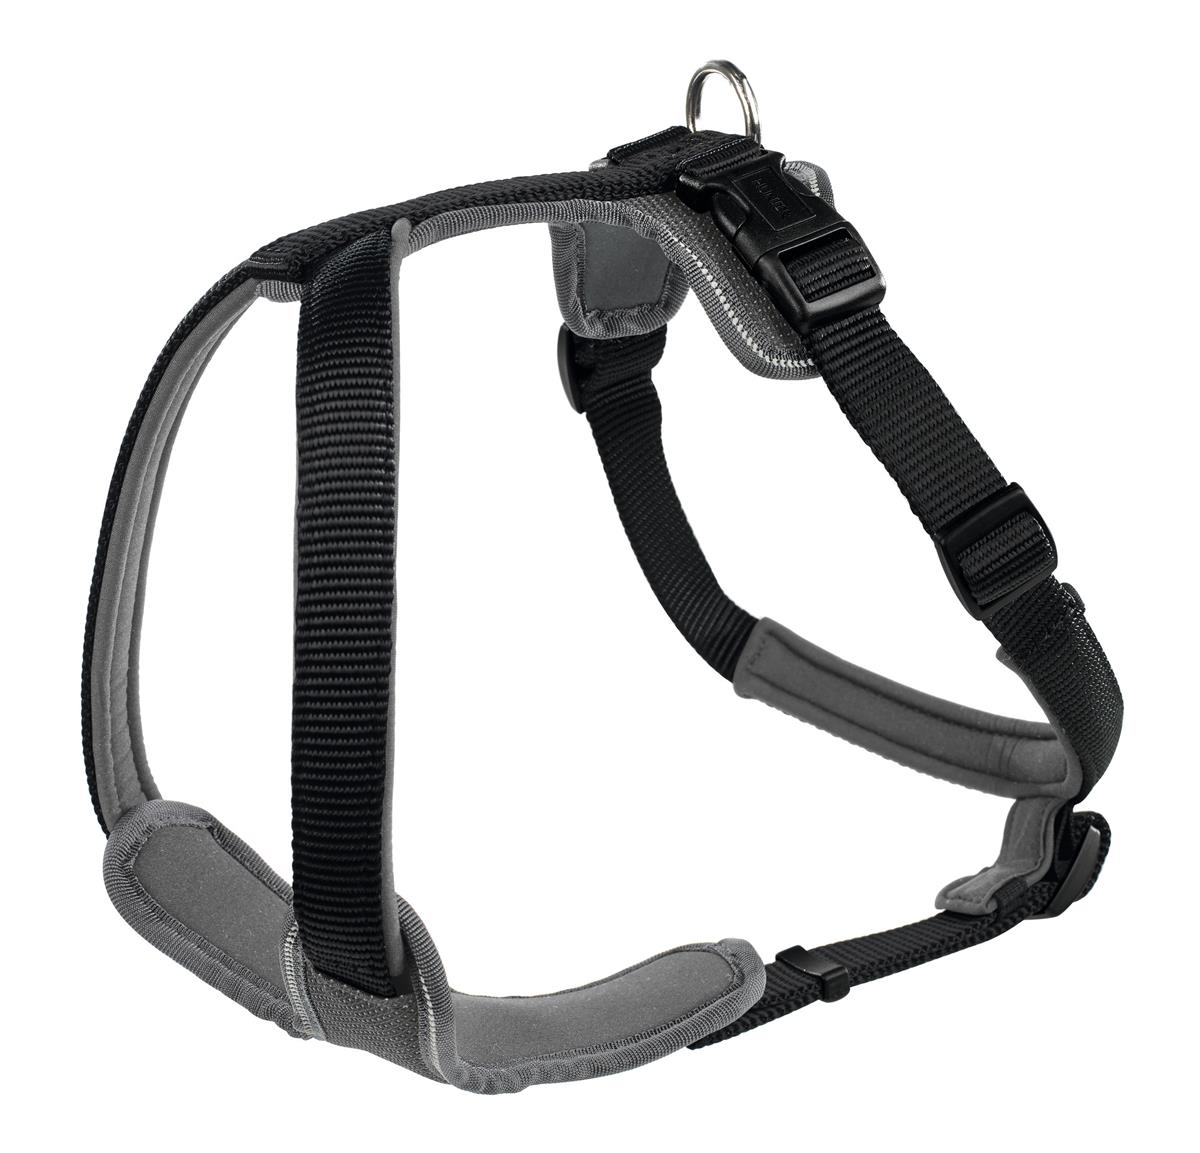 Harness Neopren XS 38-48 cm, 15 mm Nylon black/ Neopren grey